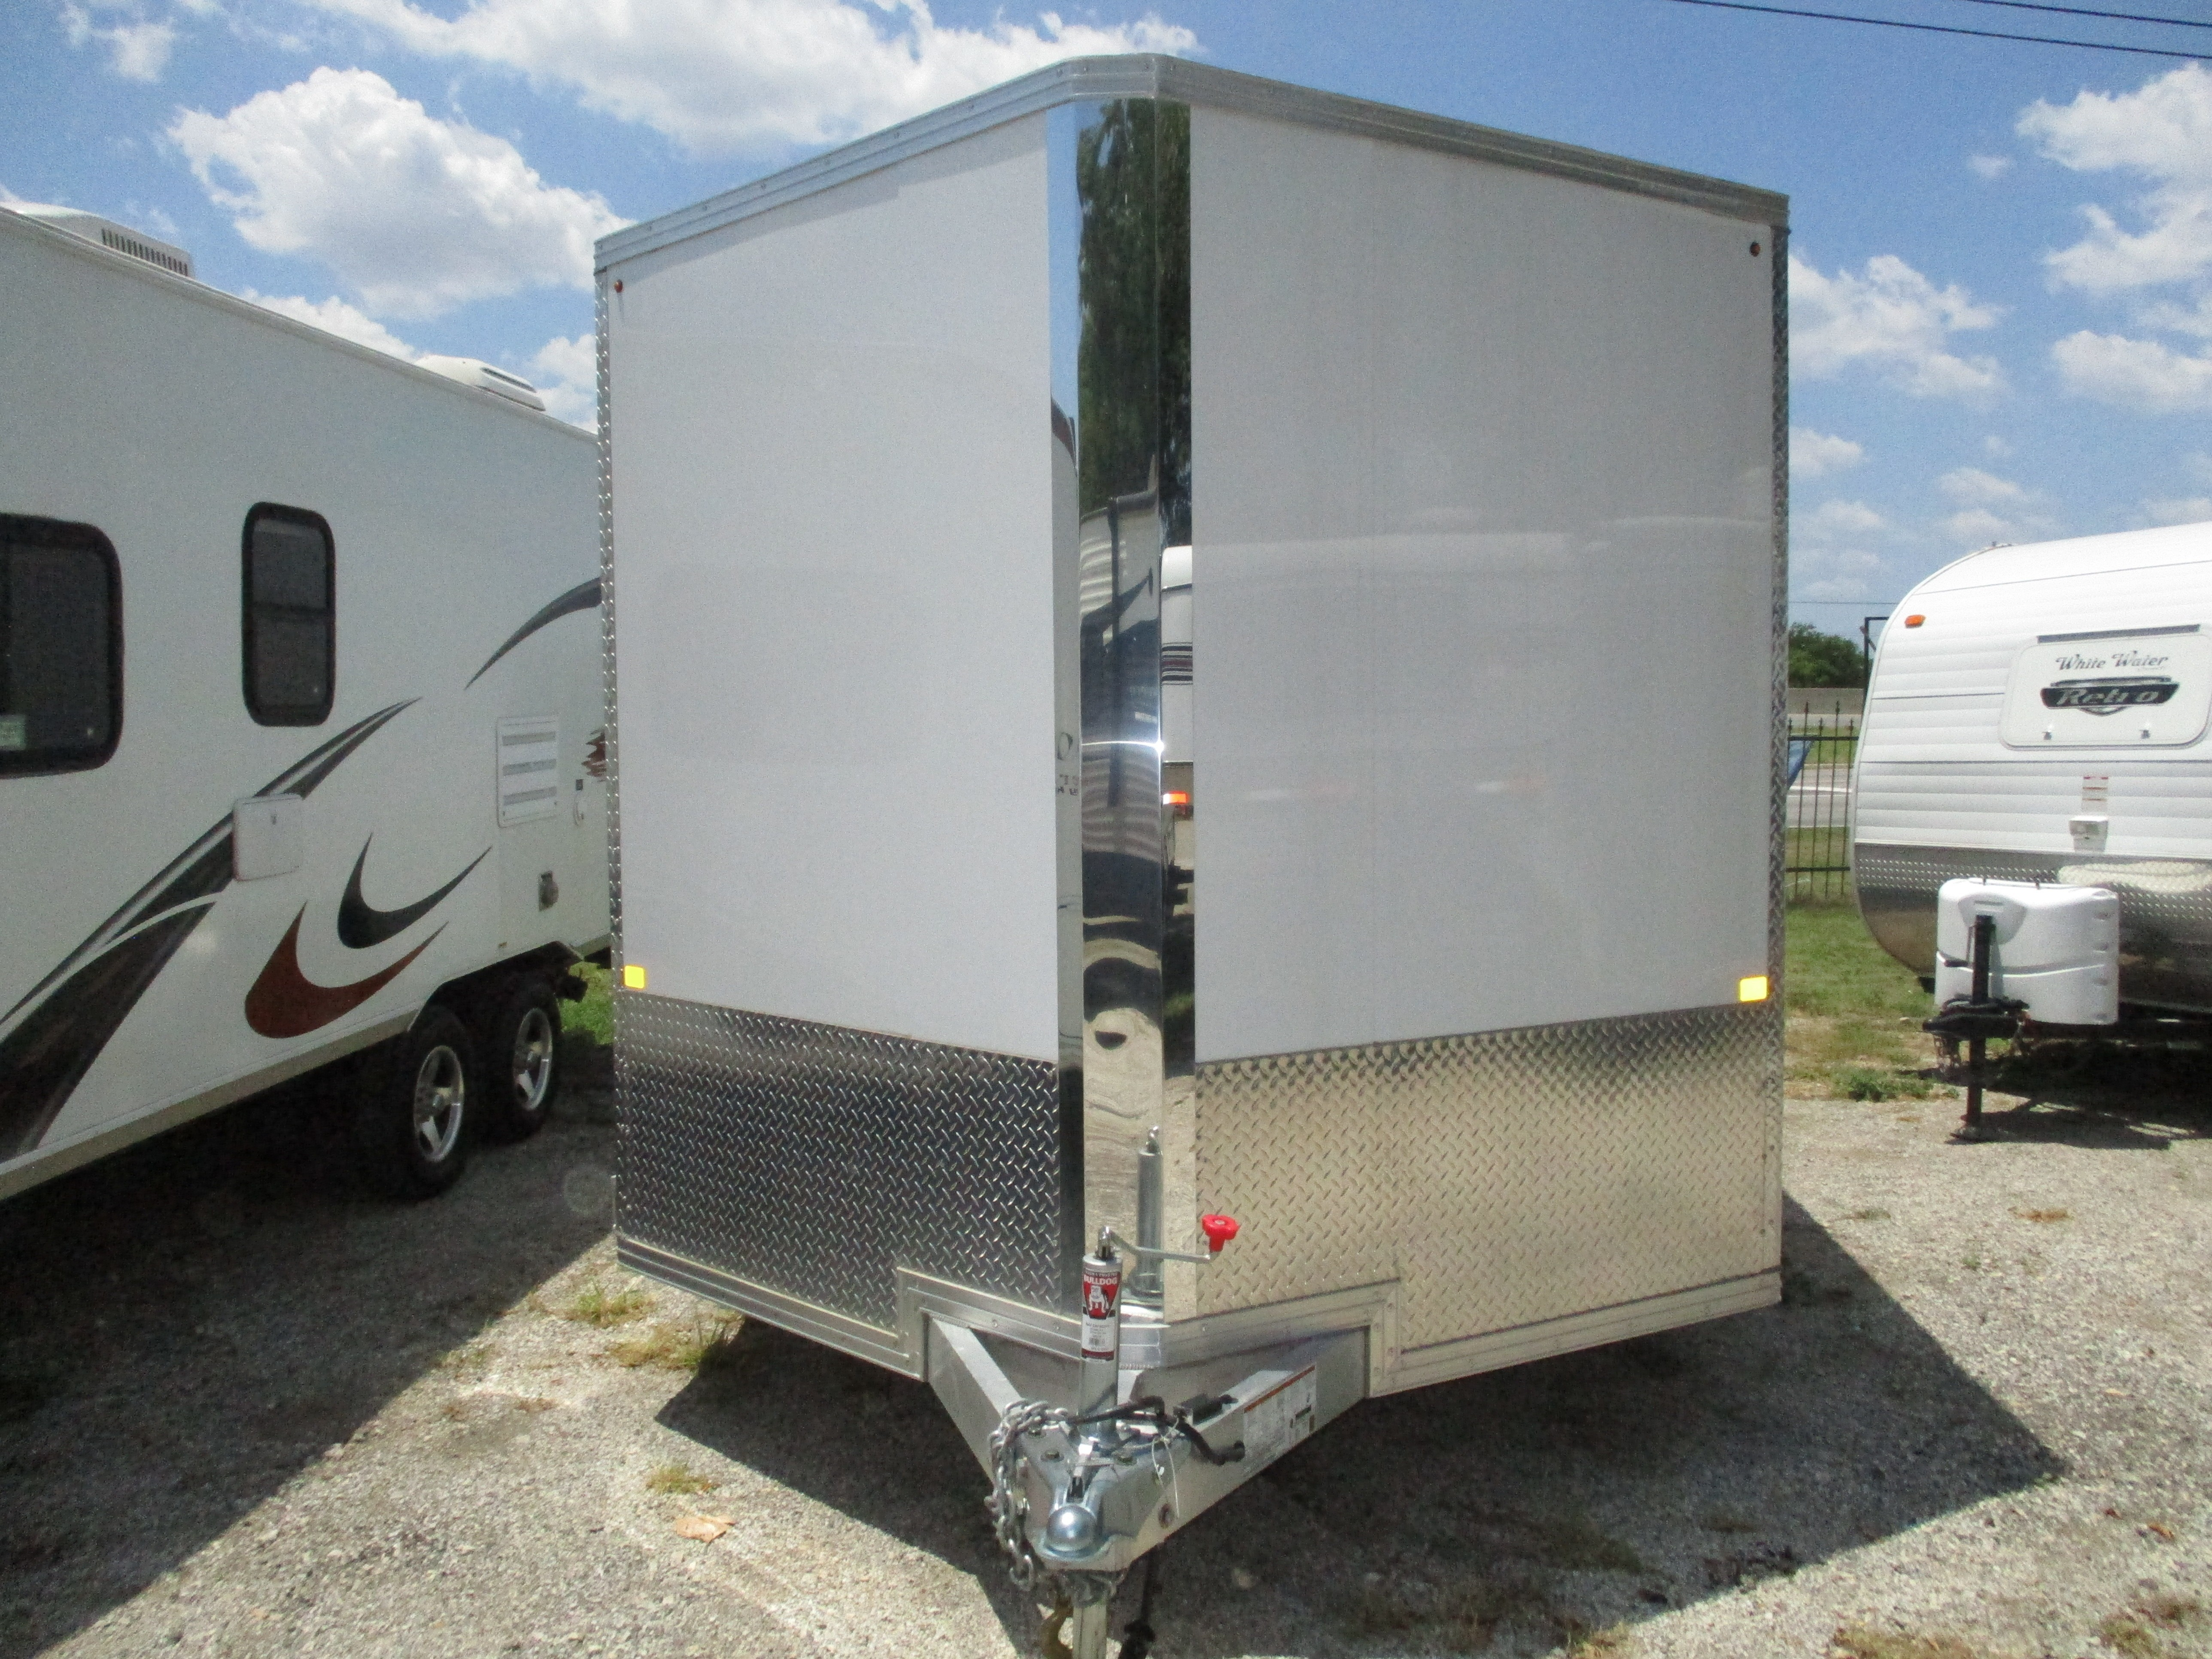 2017 FOREST RIVER STEALTH RG3512 RVs For Sale: 4 RVs - RV Trader